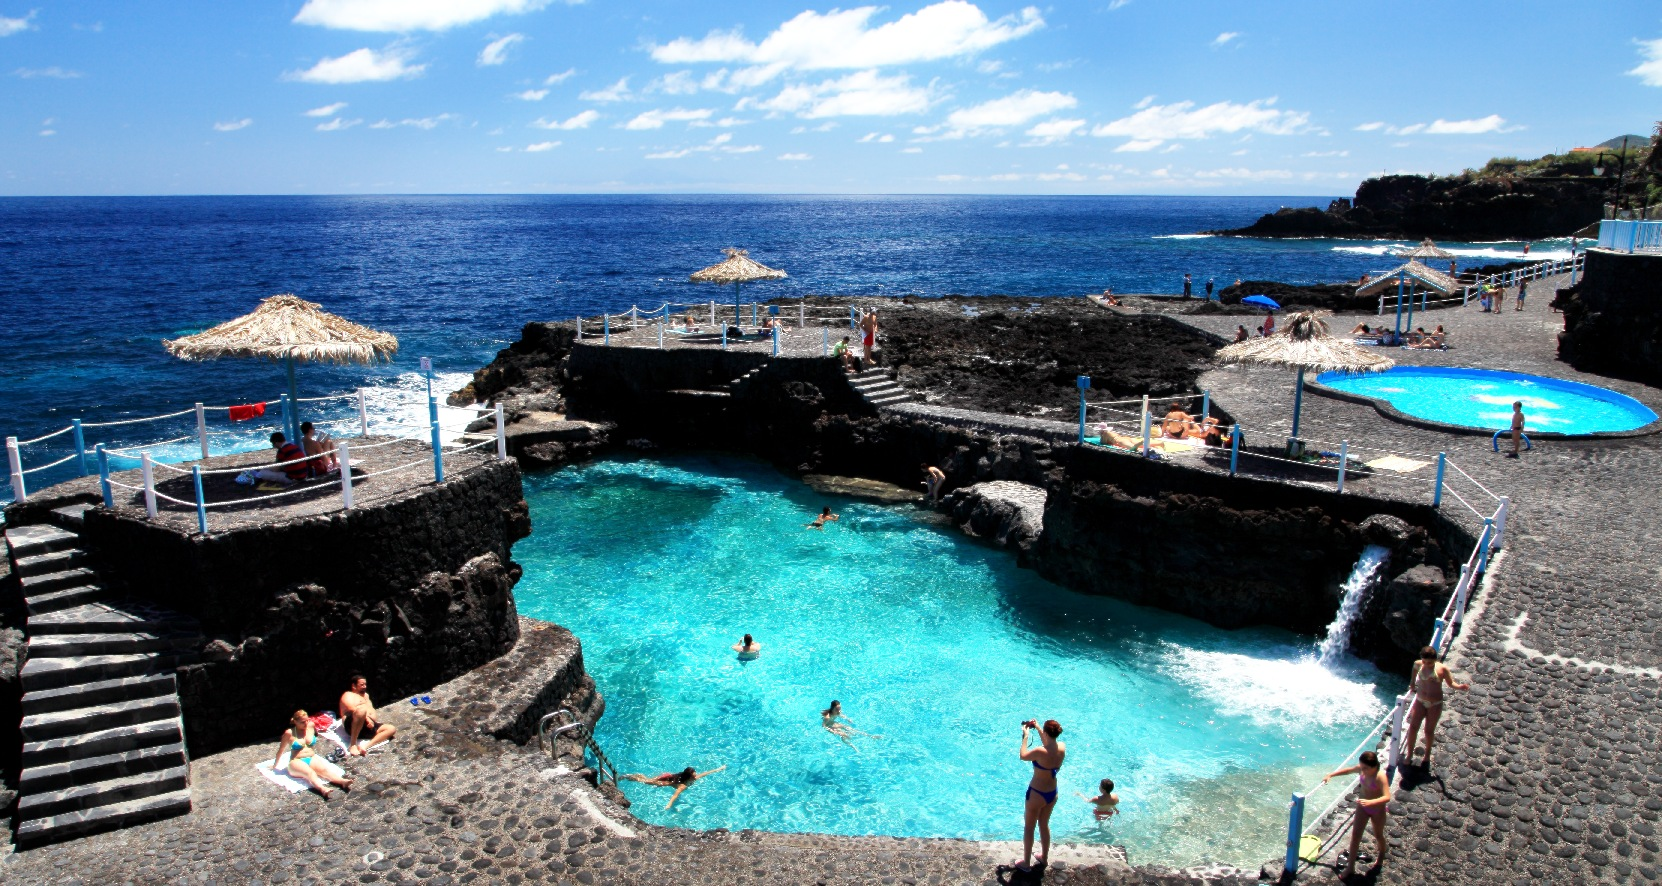 Above: The azure natural swimming pools of El Charco Azul.